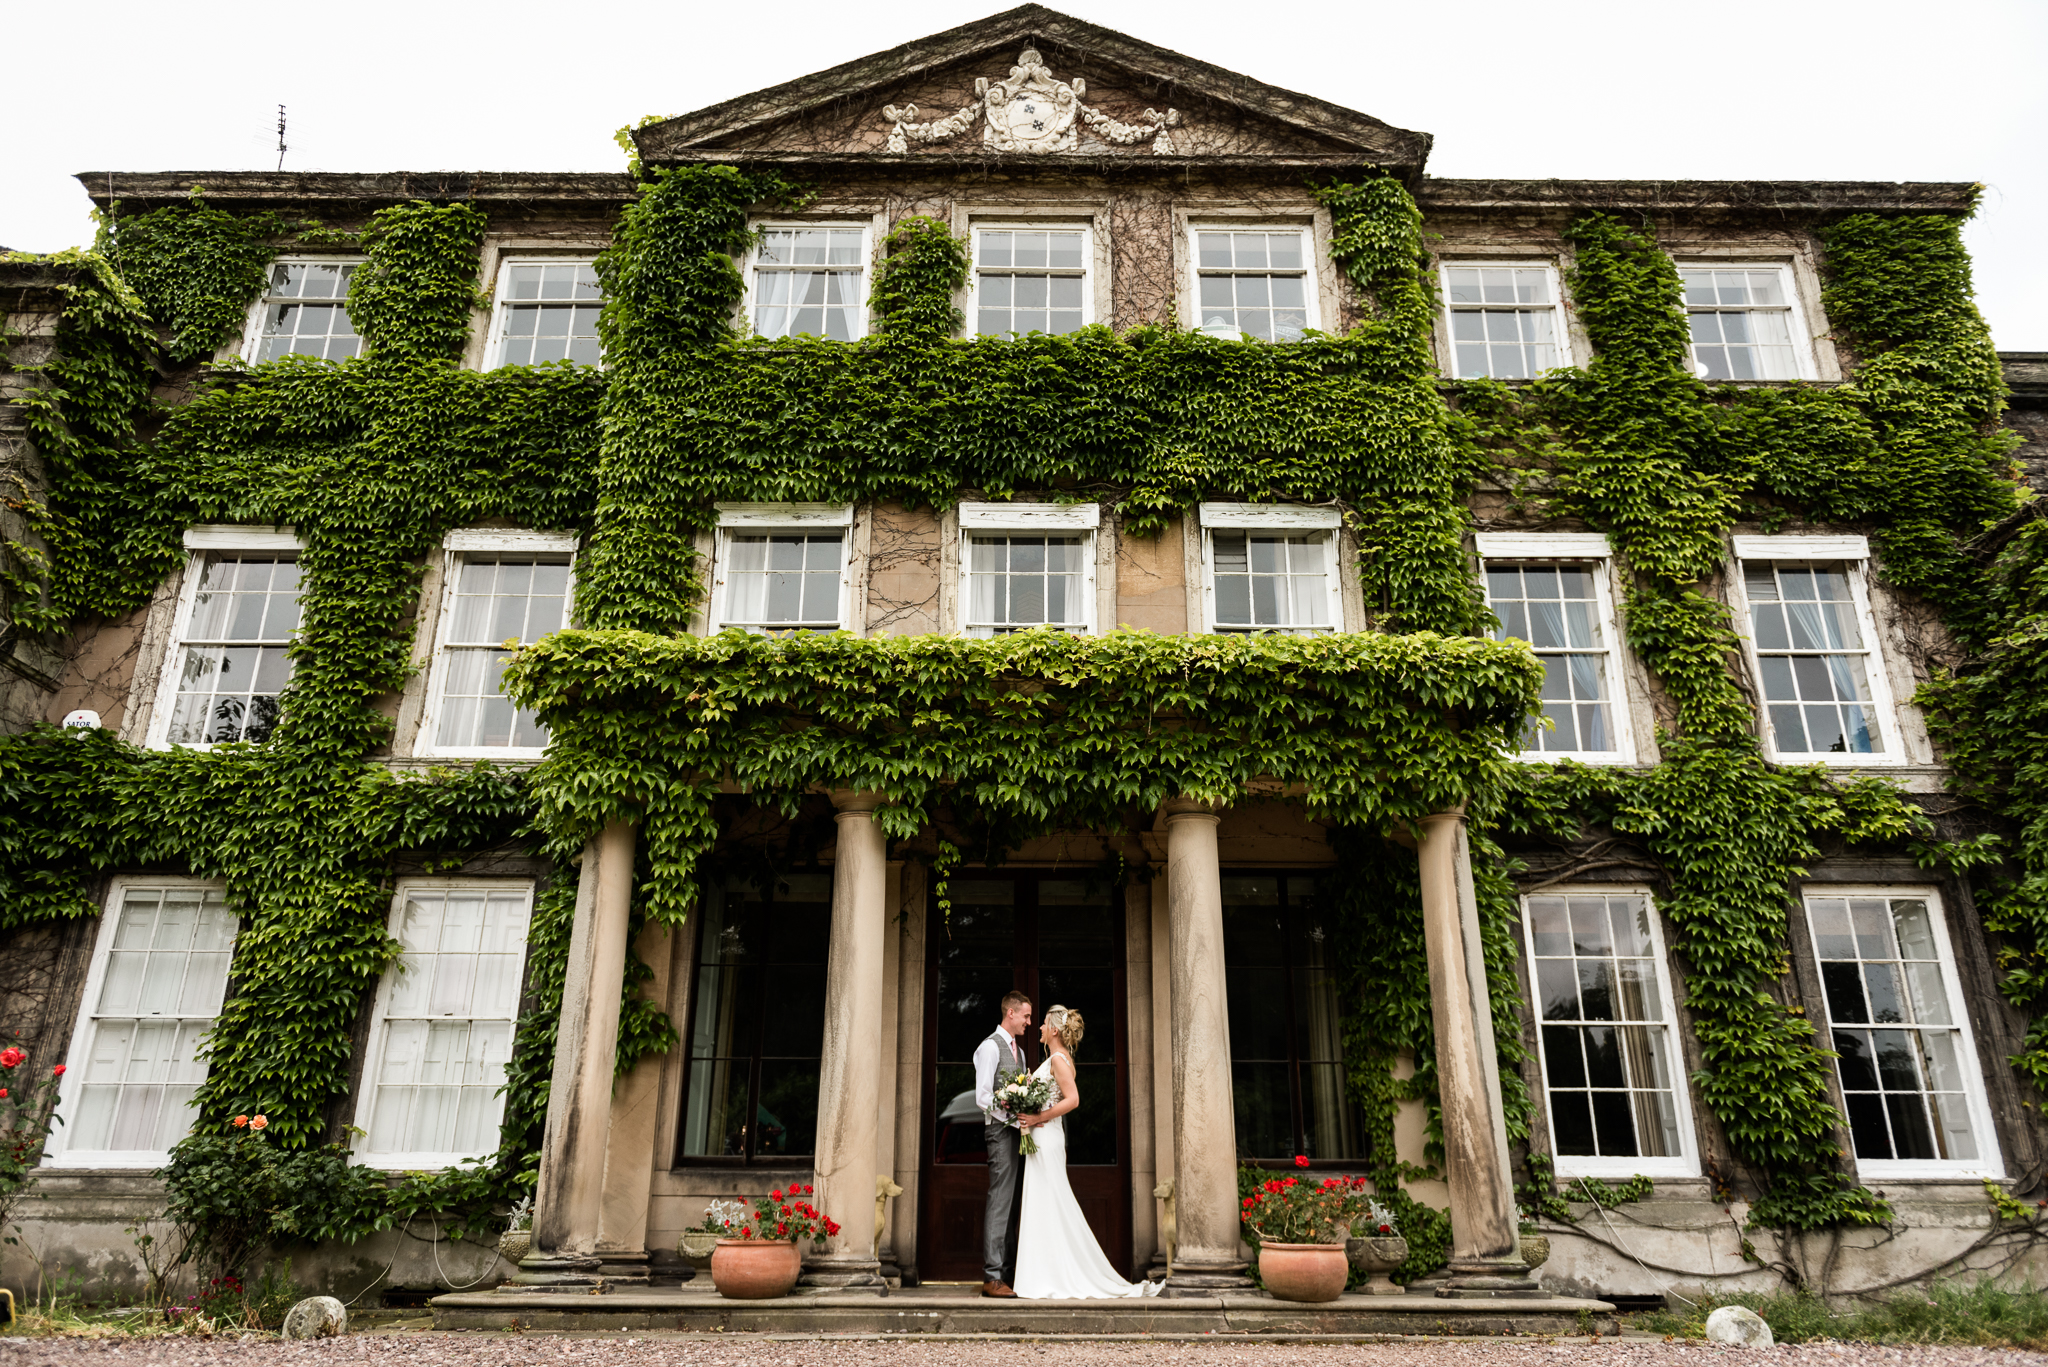 Vintage Outdoor Wedding Photography English Country Afternoon Tea Temple Bishton Hall - Jenny Harper-50.jpg